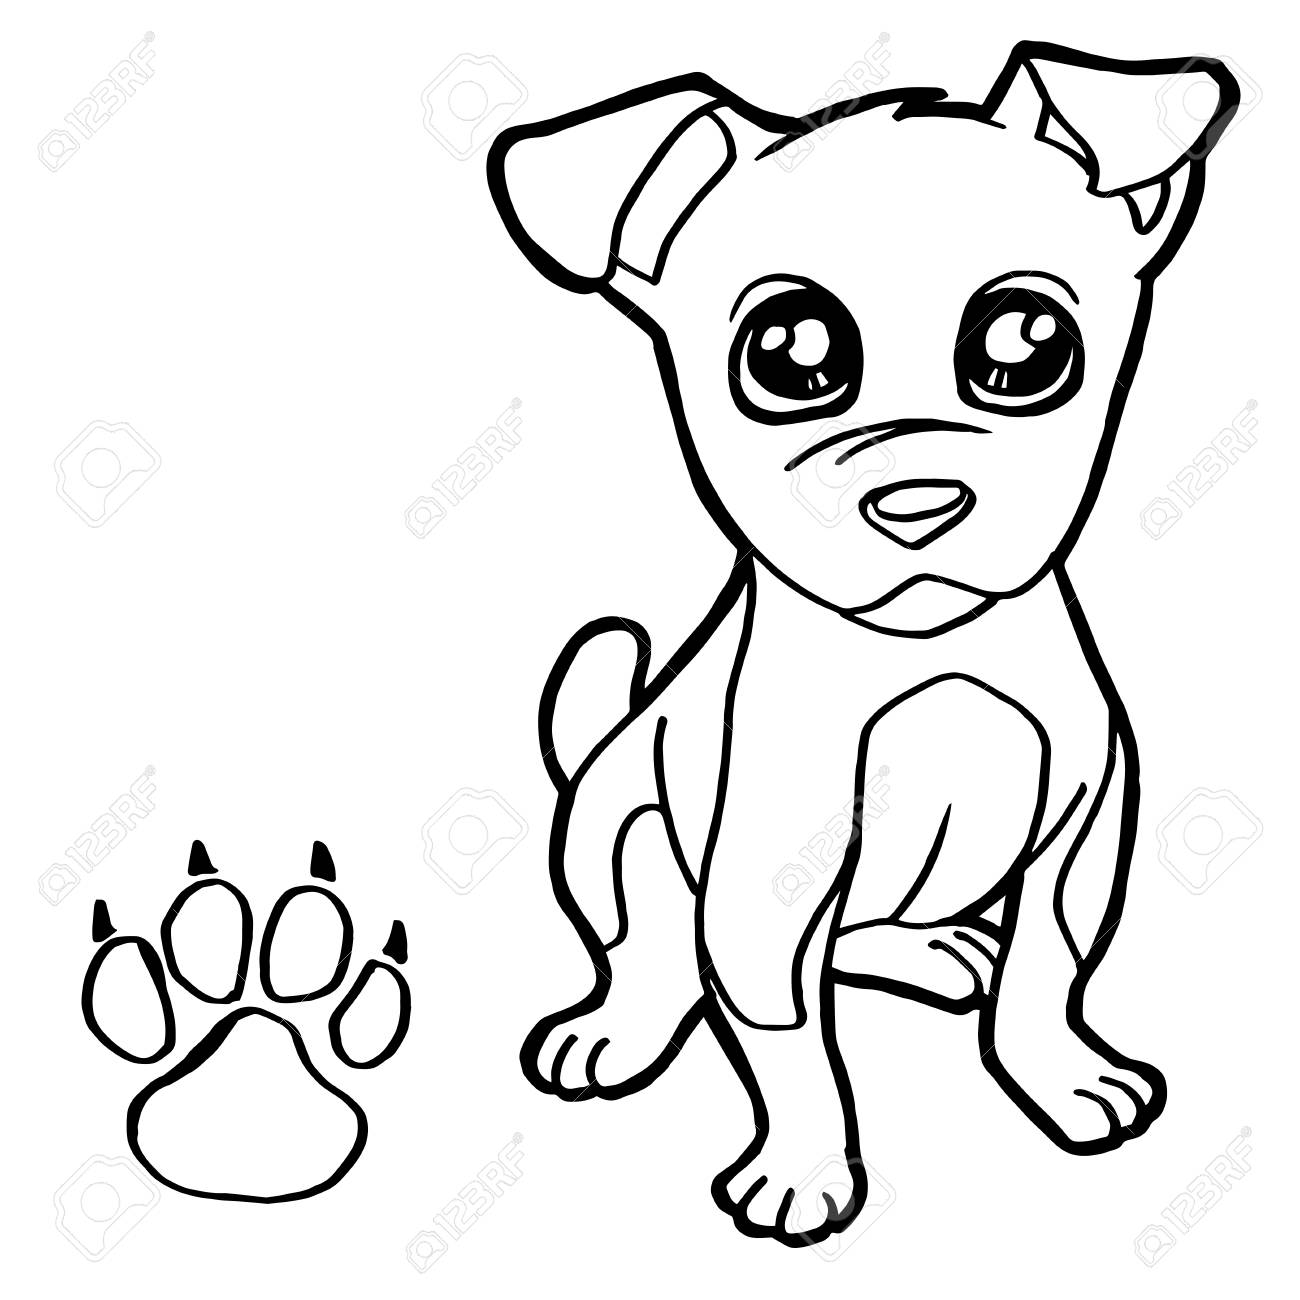 Dog With Paw Print Coloring Page Vector Royalty Free Cliparts